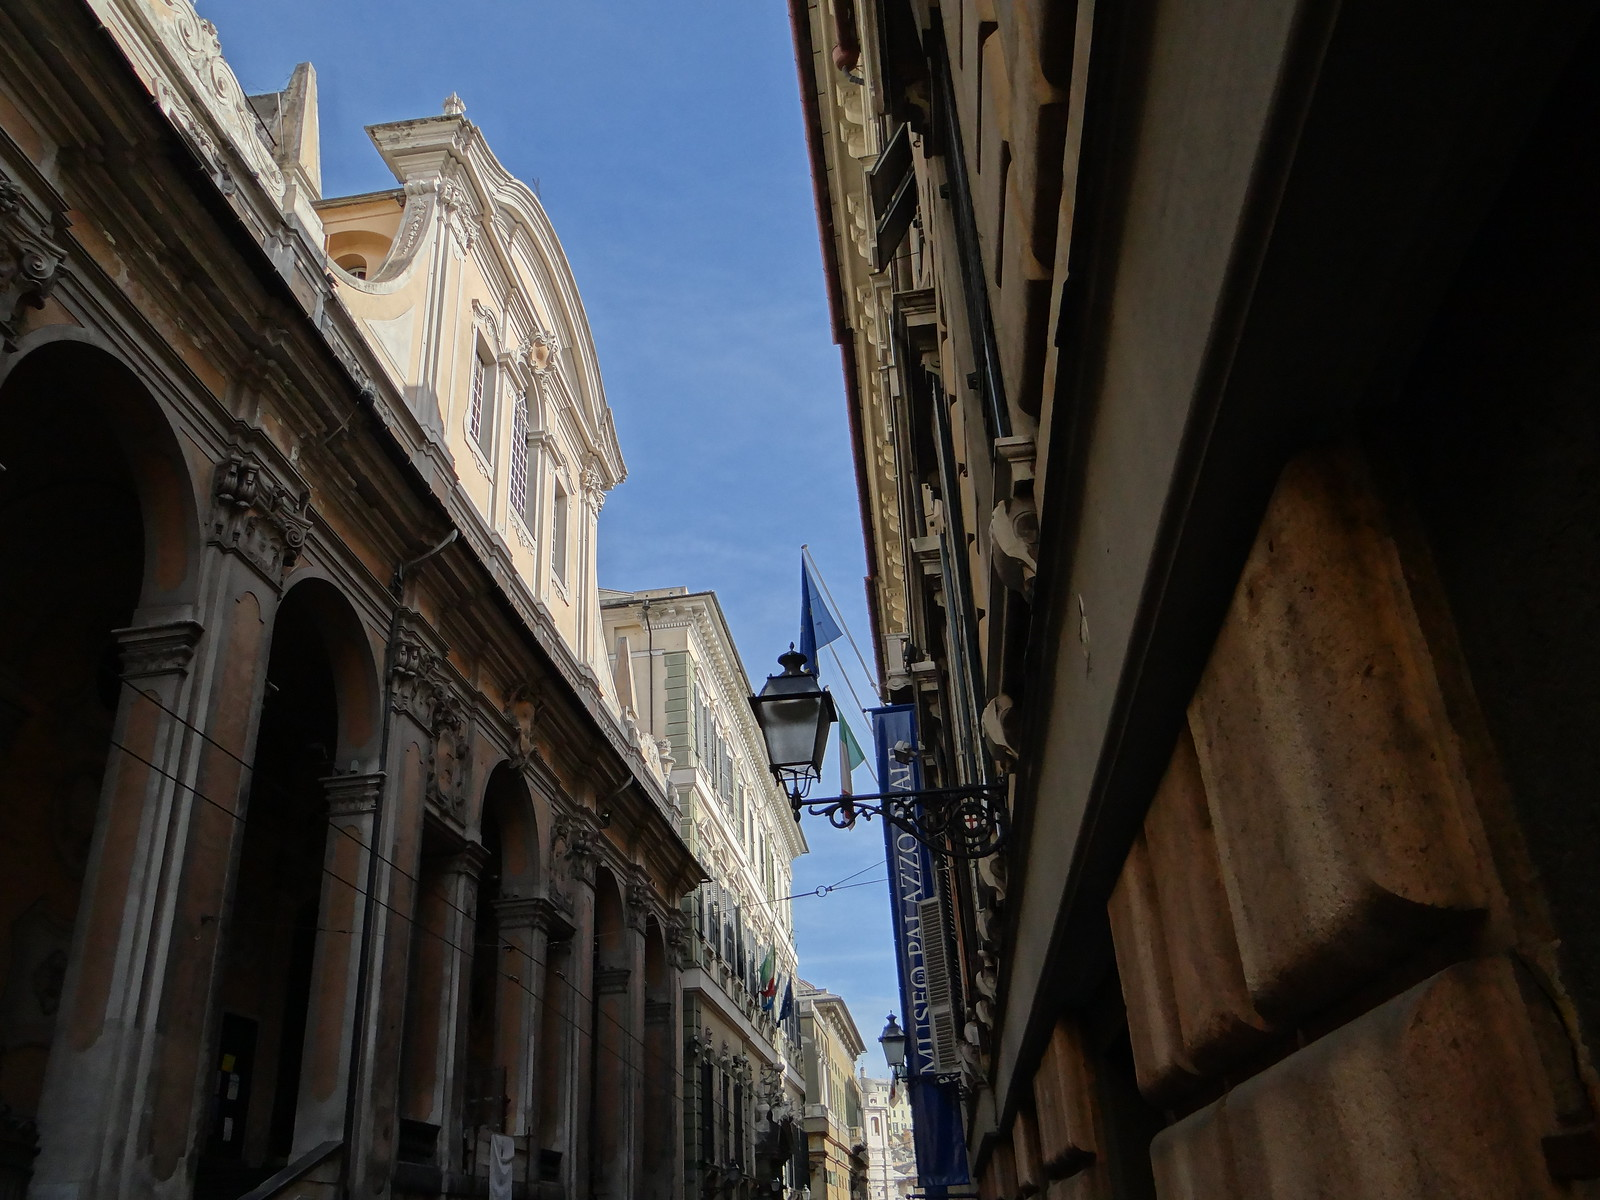 A street in Genoa